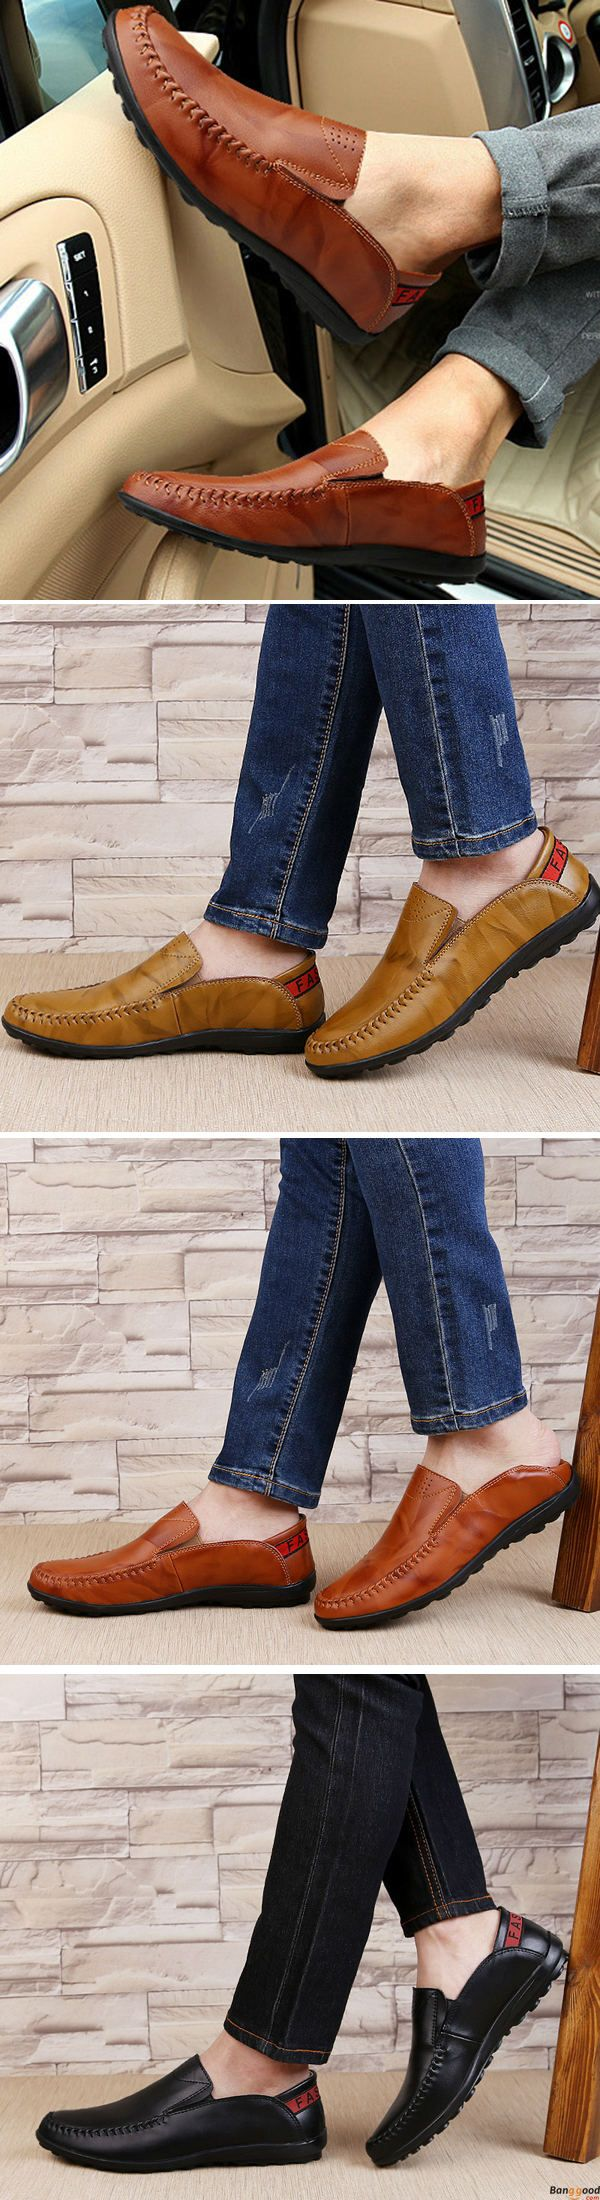 US$52.81+ Free Shipping. 5 colors available. Men loafers, casual comfortable shoes,  oxford shoes, boots, Fashion and chic, casual shoes, men's flats, oxford boots,leather short boots,loafers, casual oxford shoes,slip on  men's style, chic style, fashion style.  Shop at banggood with super affordable price. #men'sshoes#men'sstyle#chic#style#fashion#style#wintershoes#casual#shoes#casualshoes#boots#oxfordshoes#loafers#slipon#flats